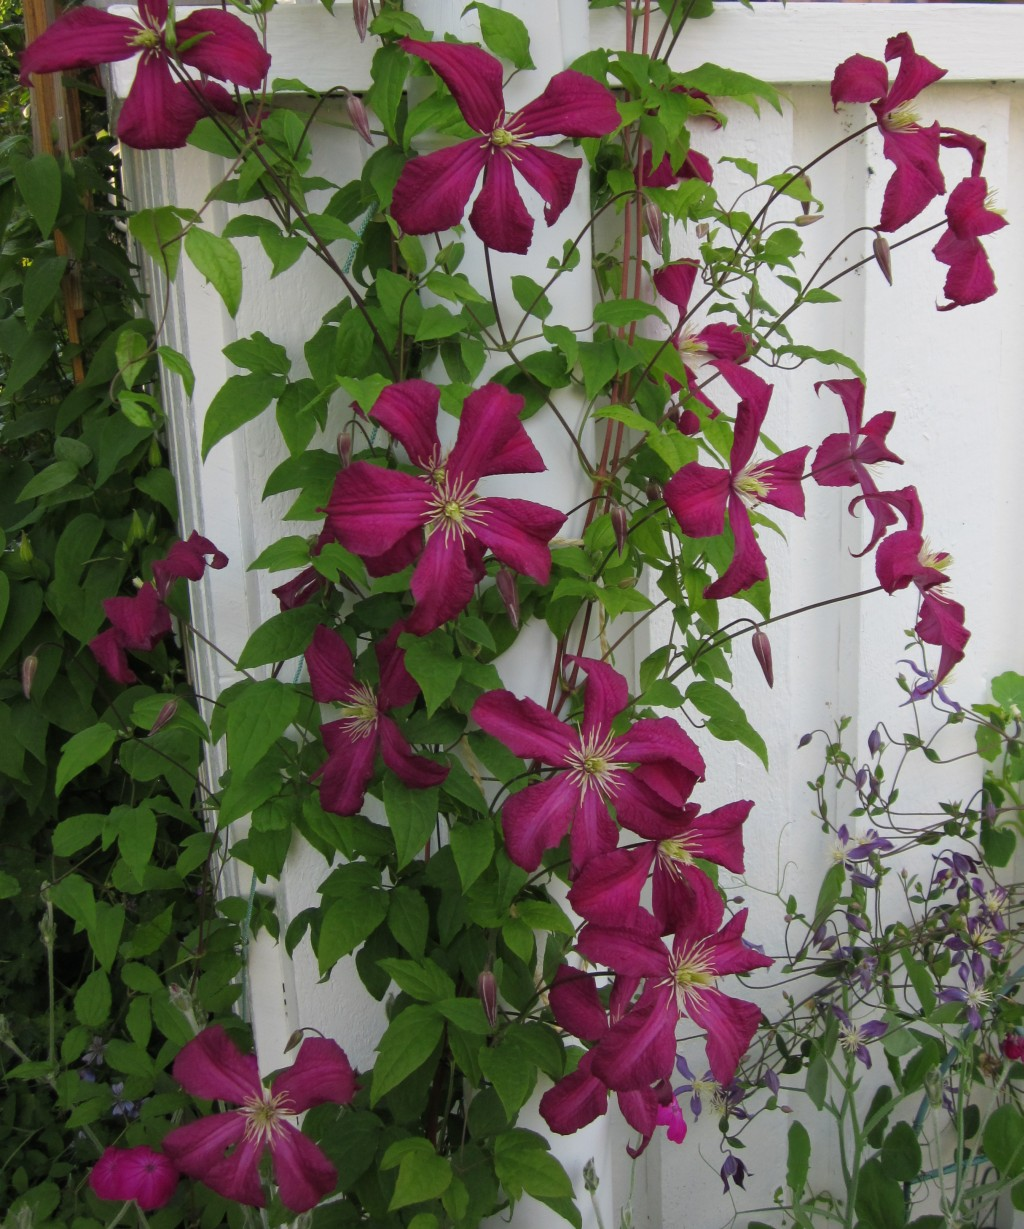 Clematis on pinterest - Clematis viticella ...